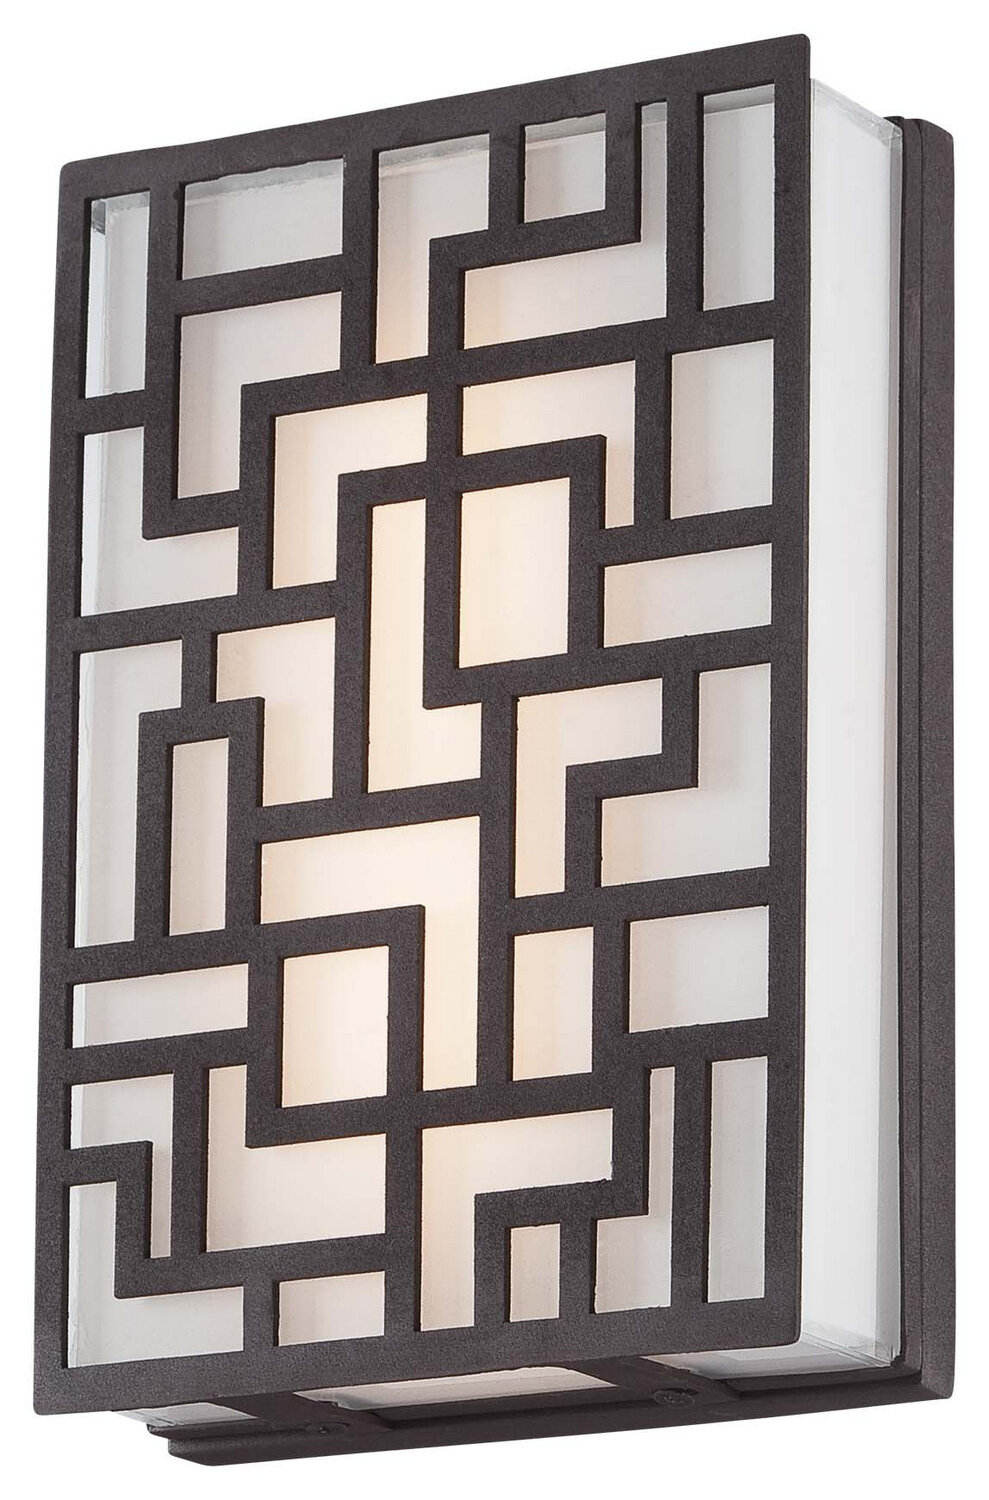 Alecia's Necklace Sand Bronze LED Wall Sconce